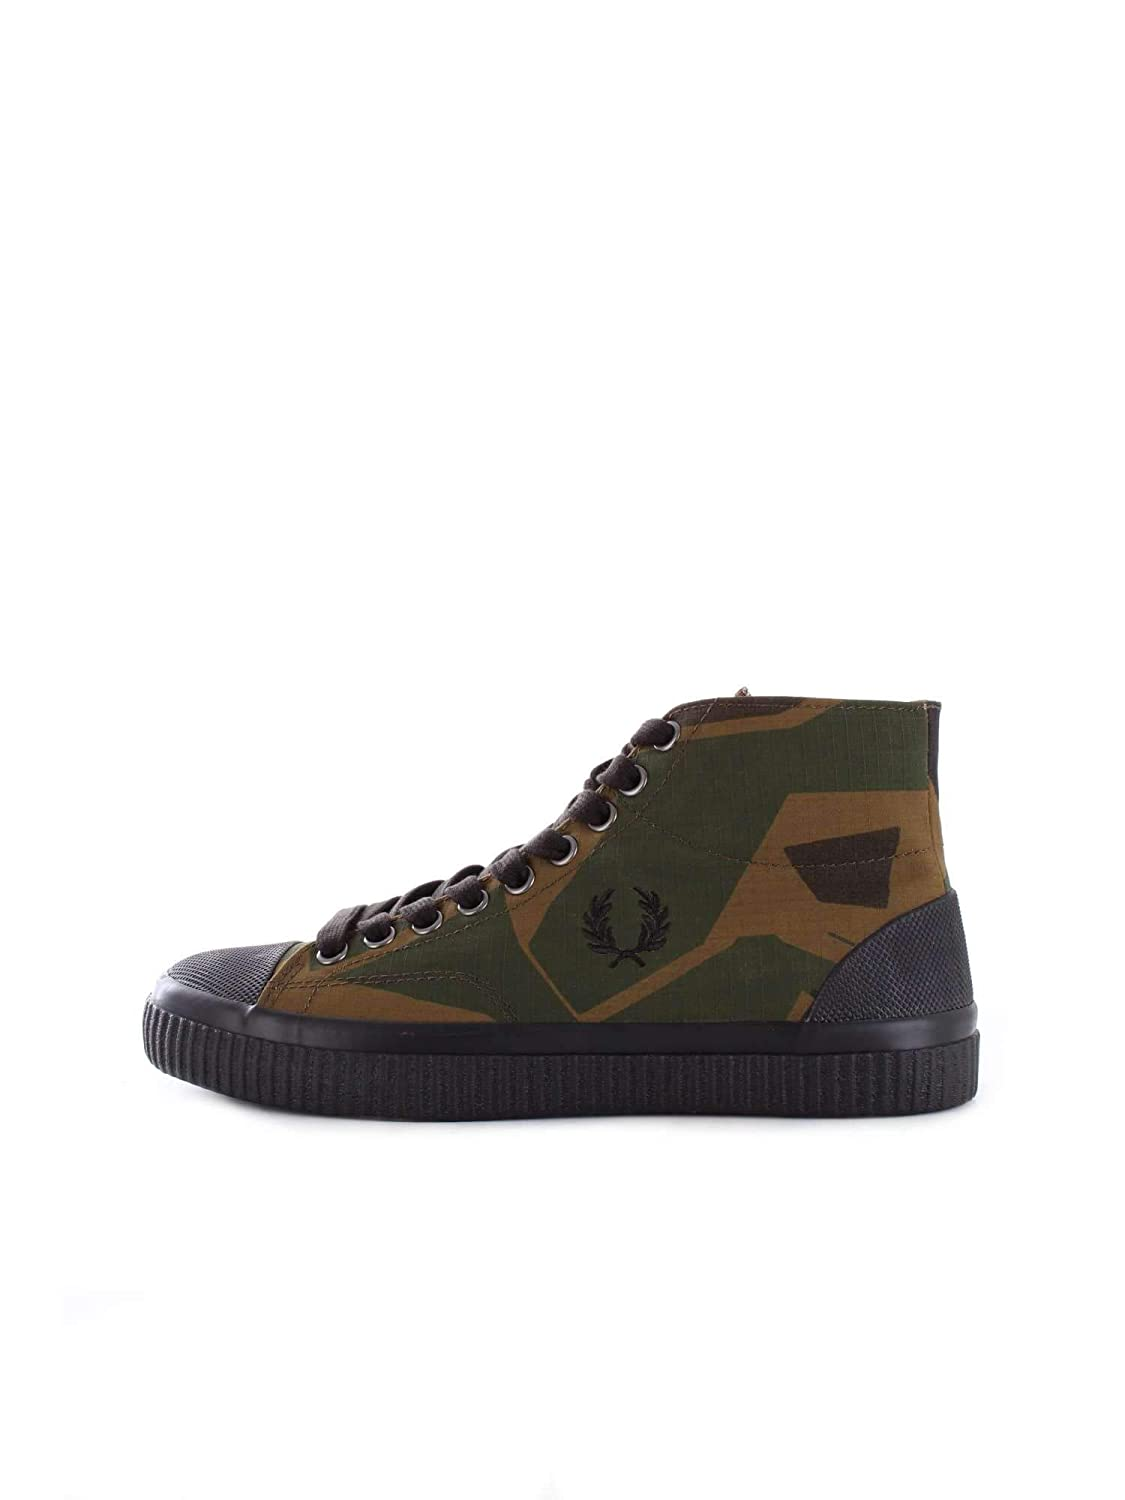 Frot Perry B4138 Trainer Harren Camouflage 6.5